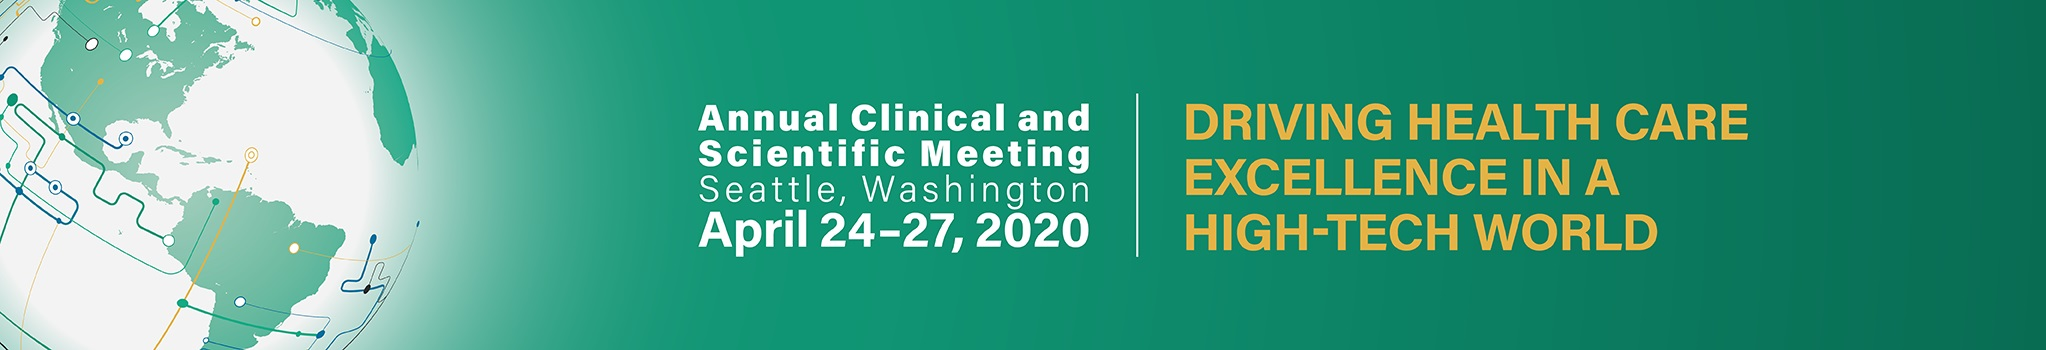 ACOG 2020 Annual Clinical and Scientific Meeting